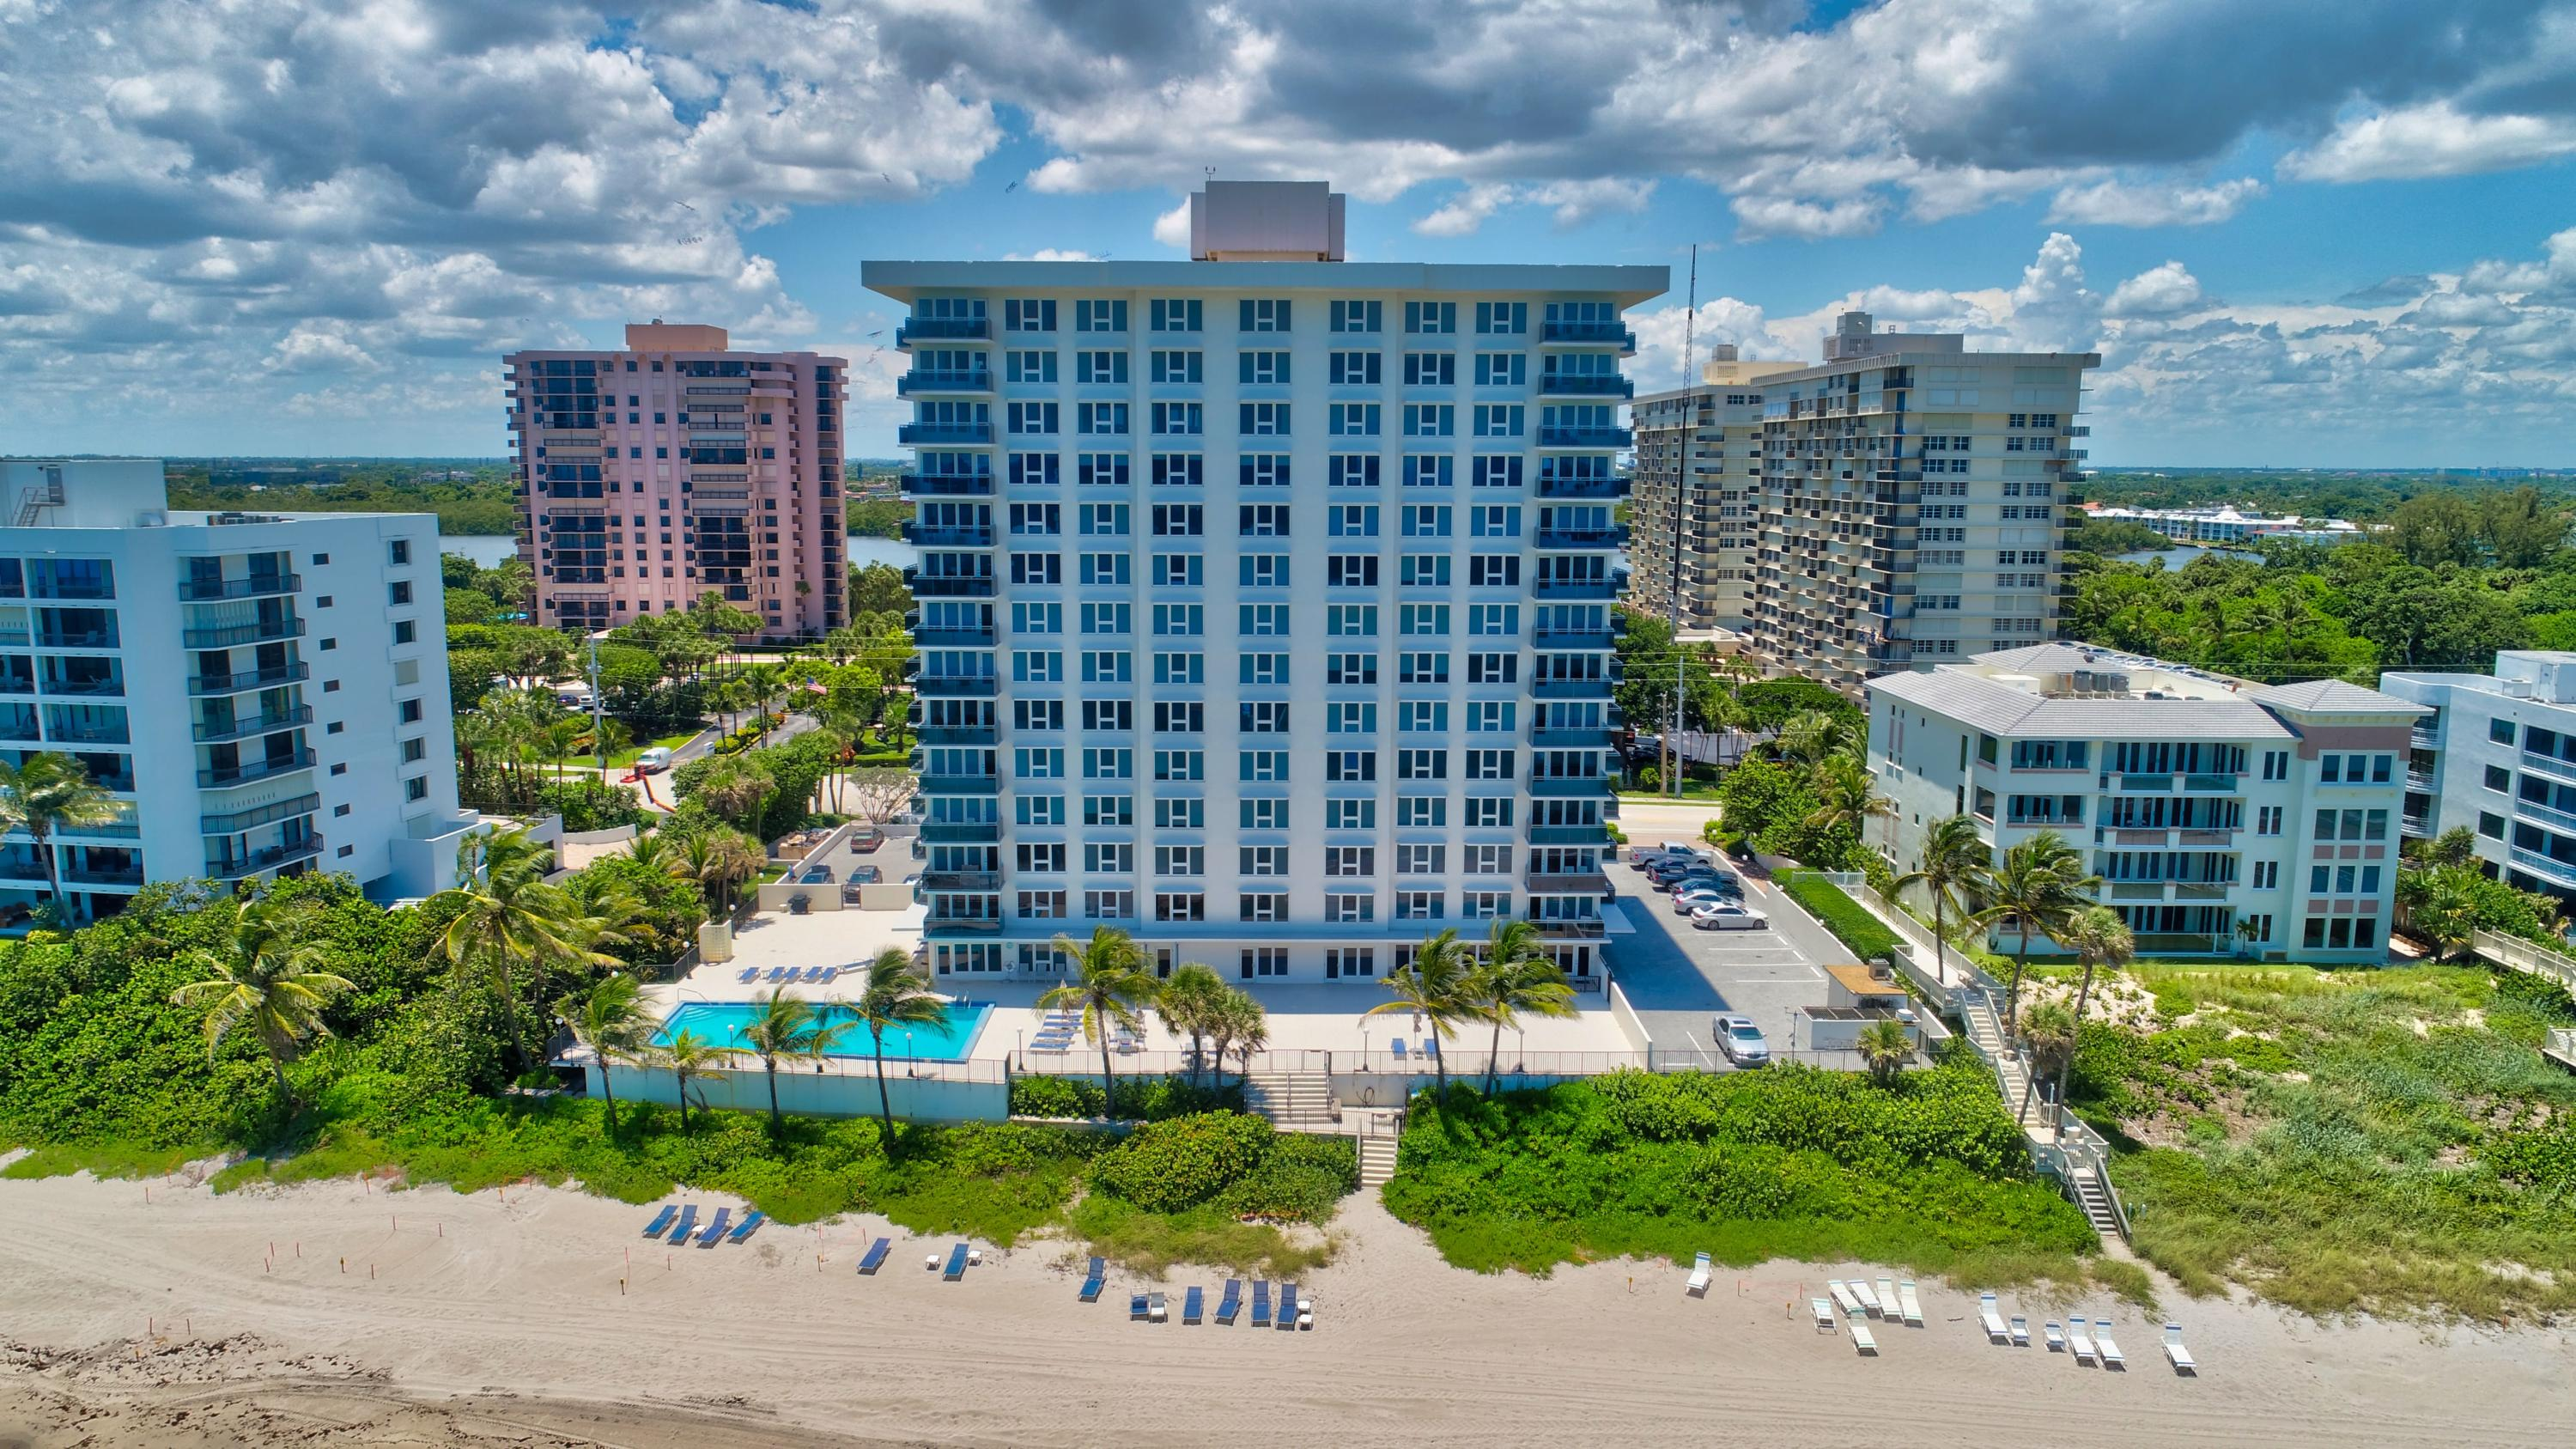 OCEAN REEF TOWERS BOCA RATON FLORIDA